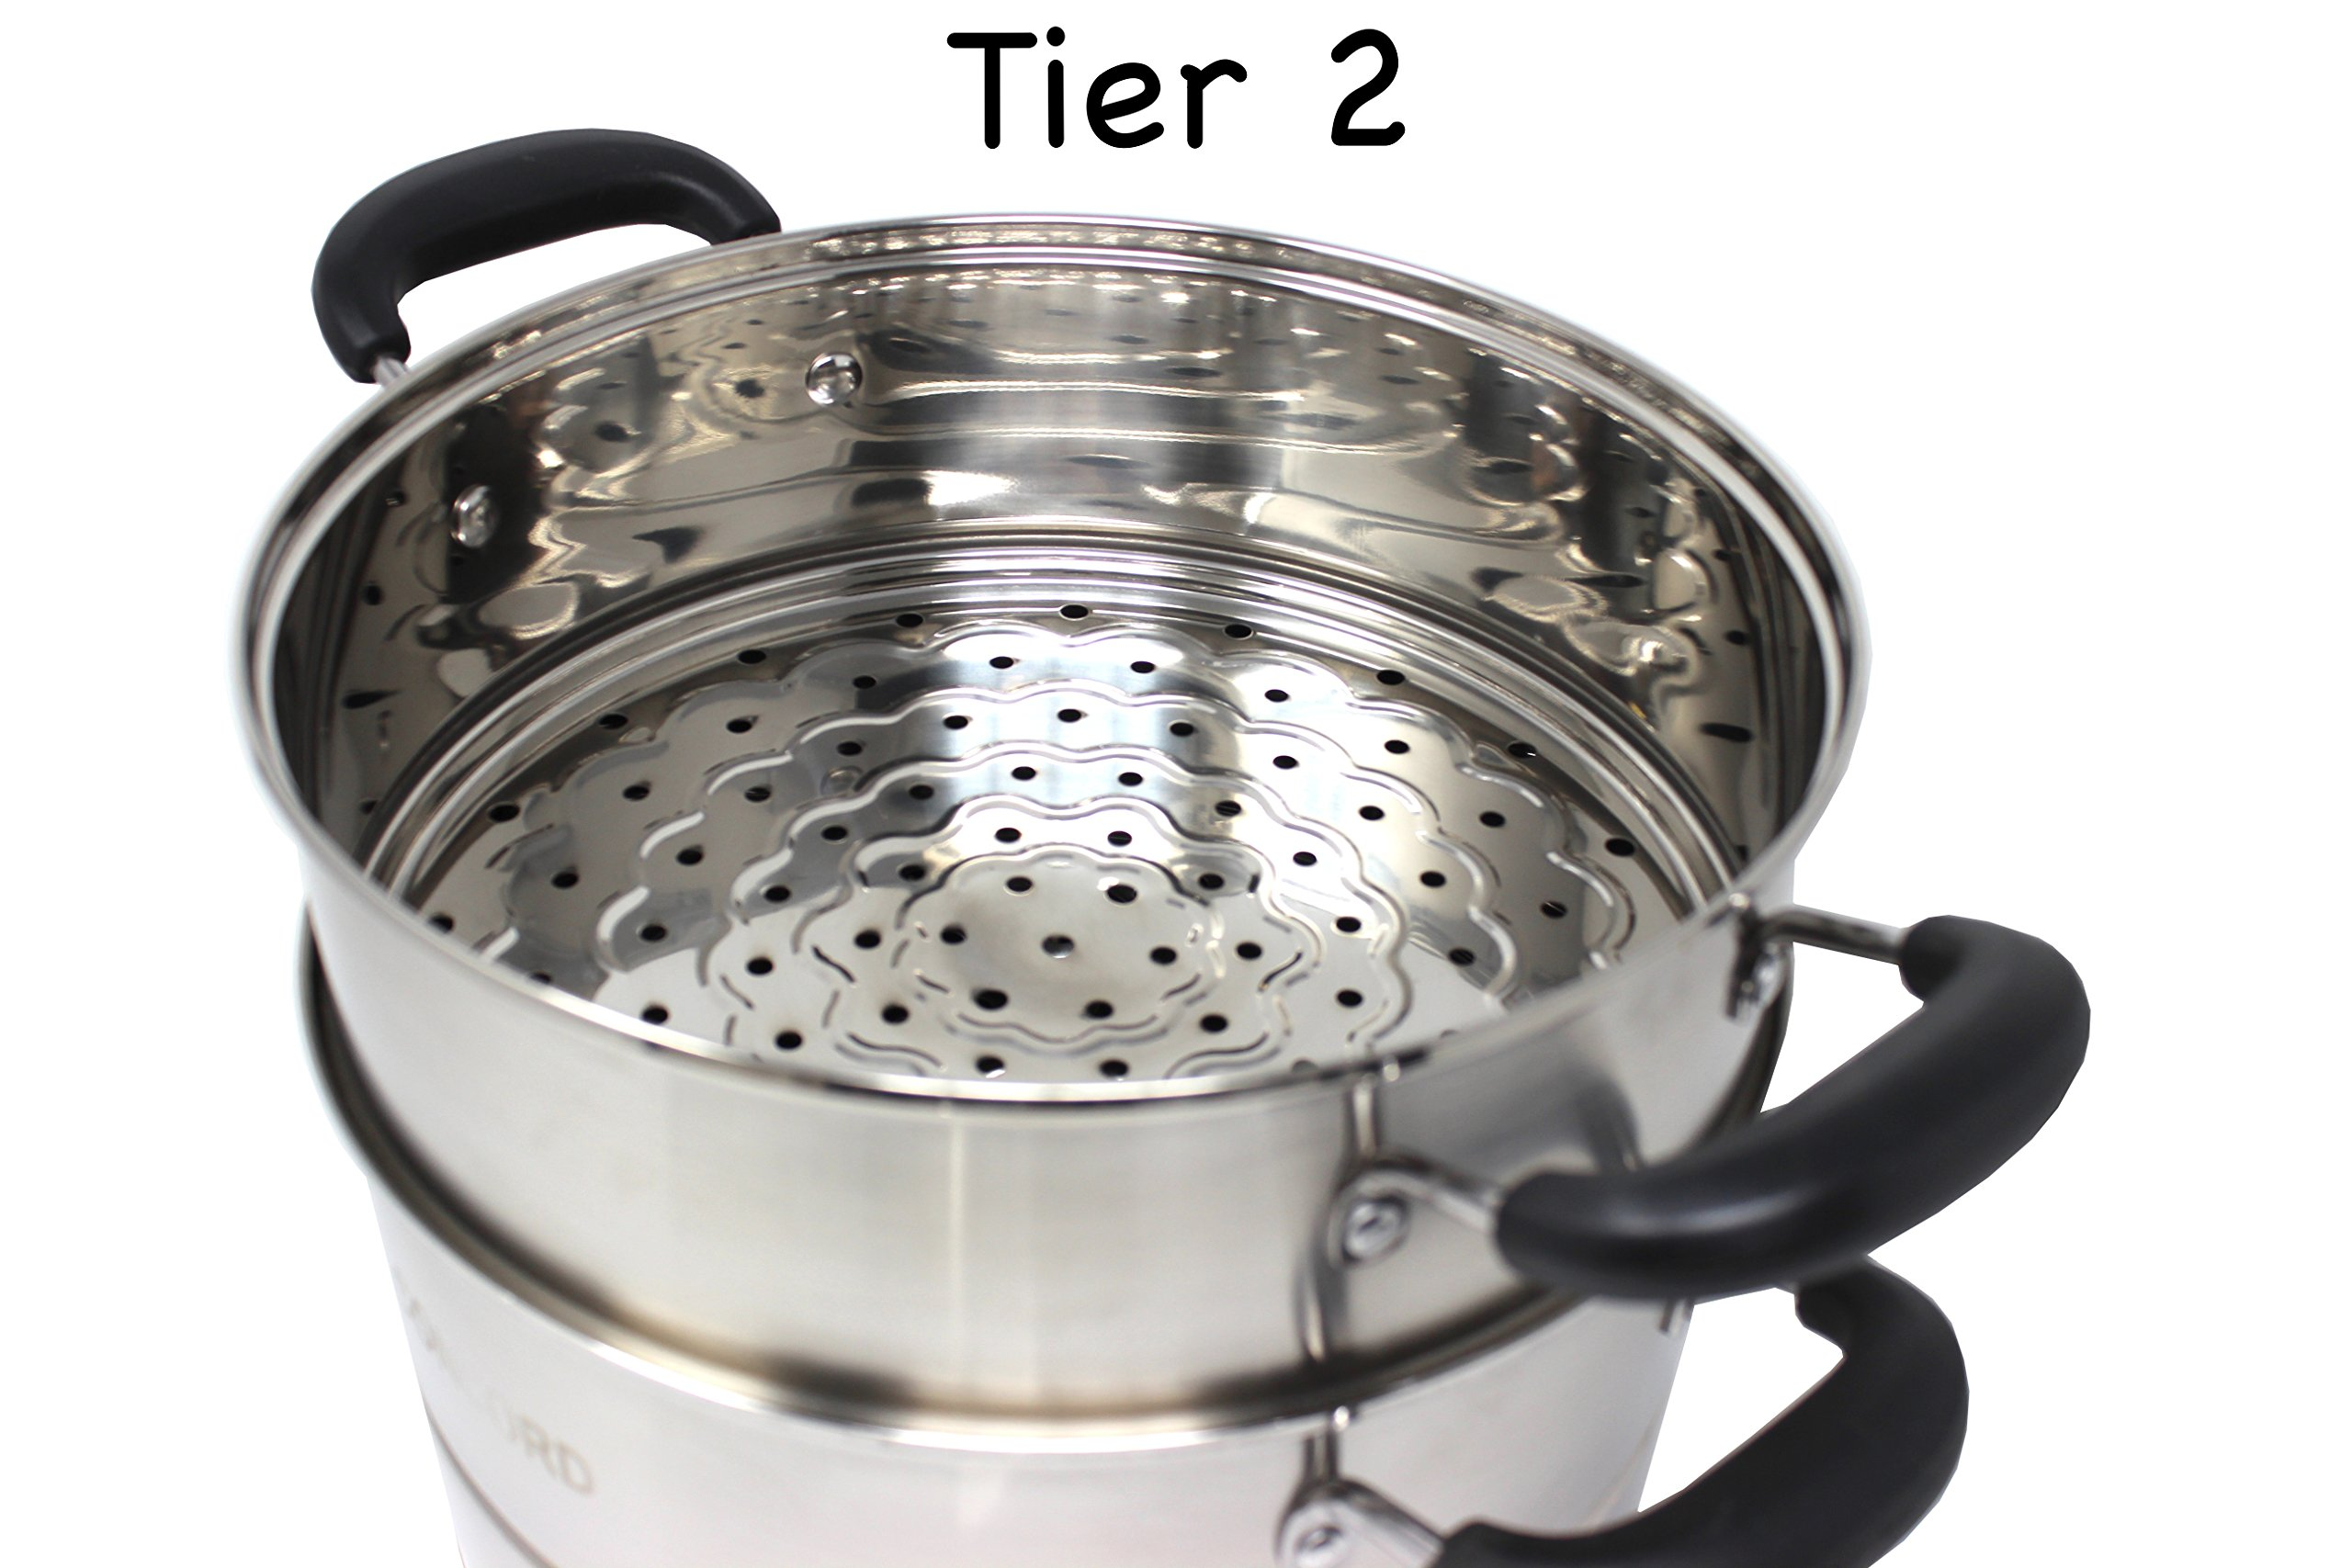 CONCORD 3 Tier Premium Stainless Steel Steamer Set (32 CM) by Concord Cookware (Image #5)